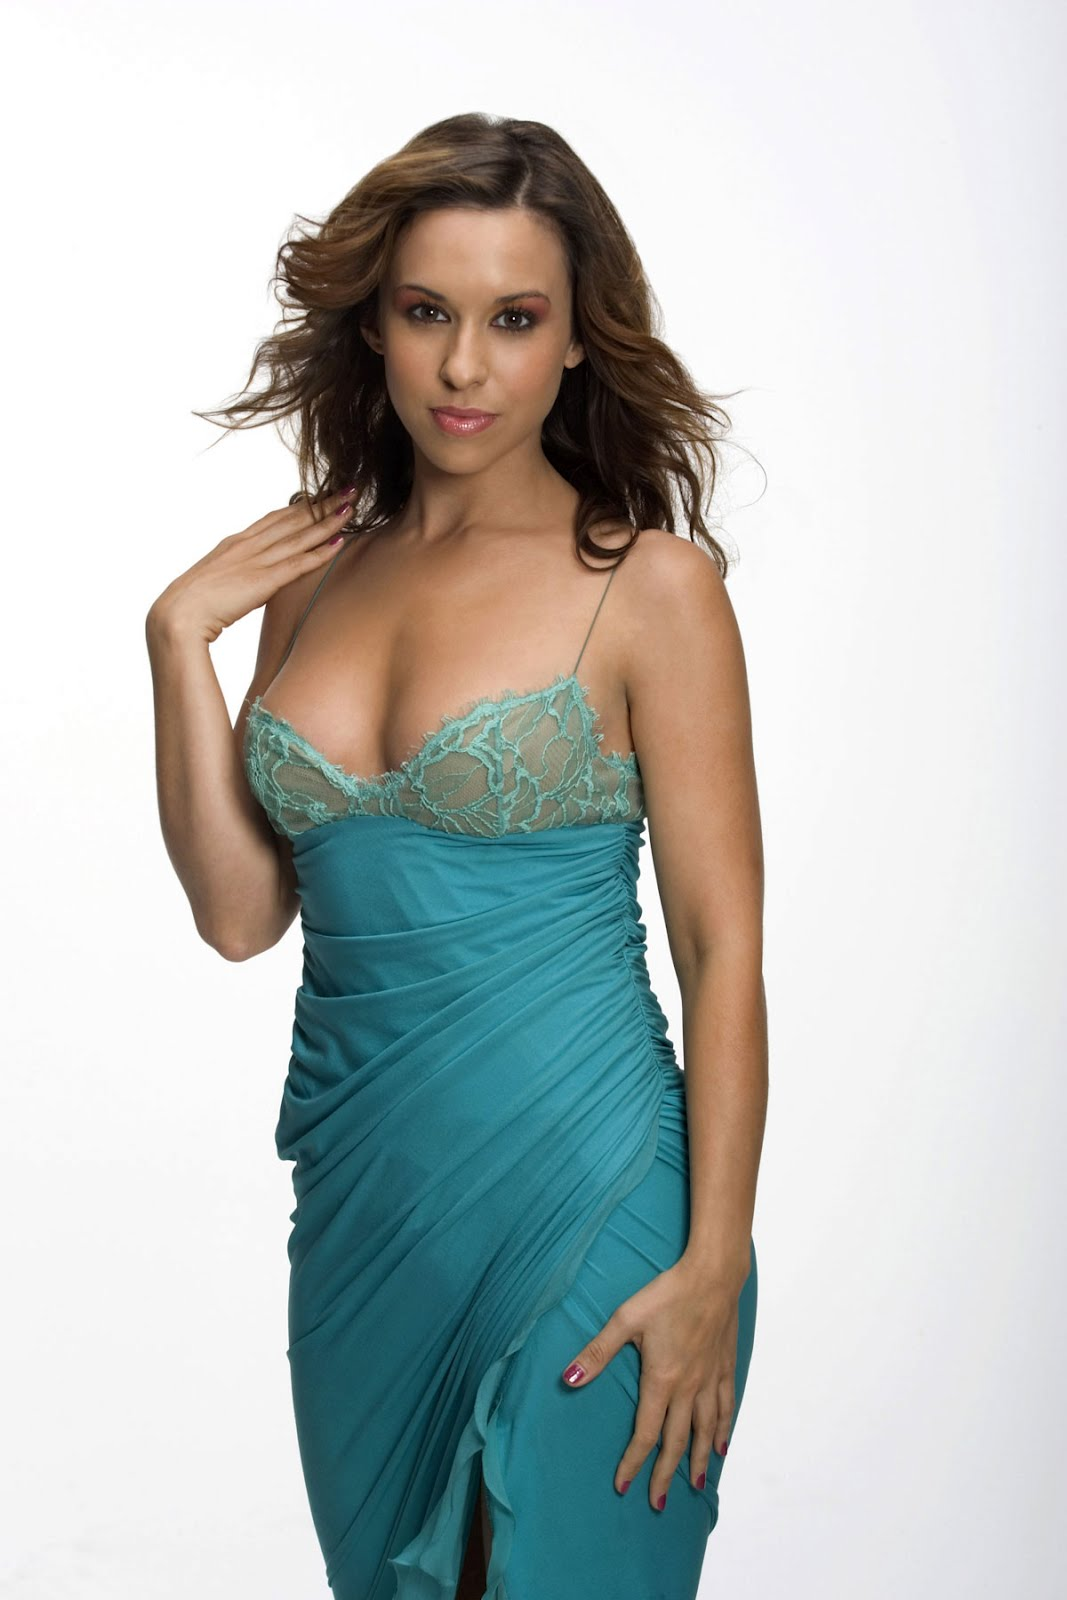 Lacey Chabert 34 C Cup Size3